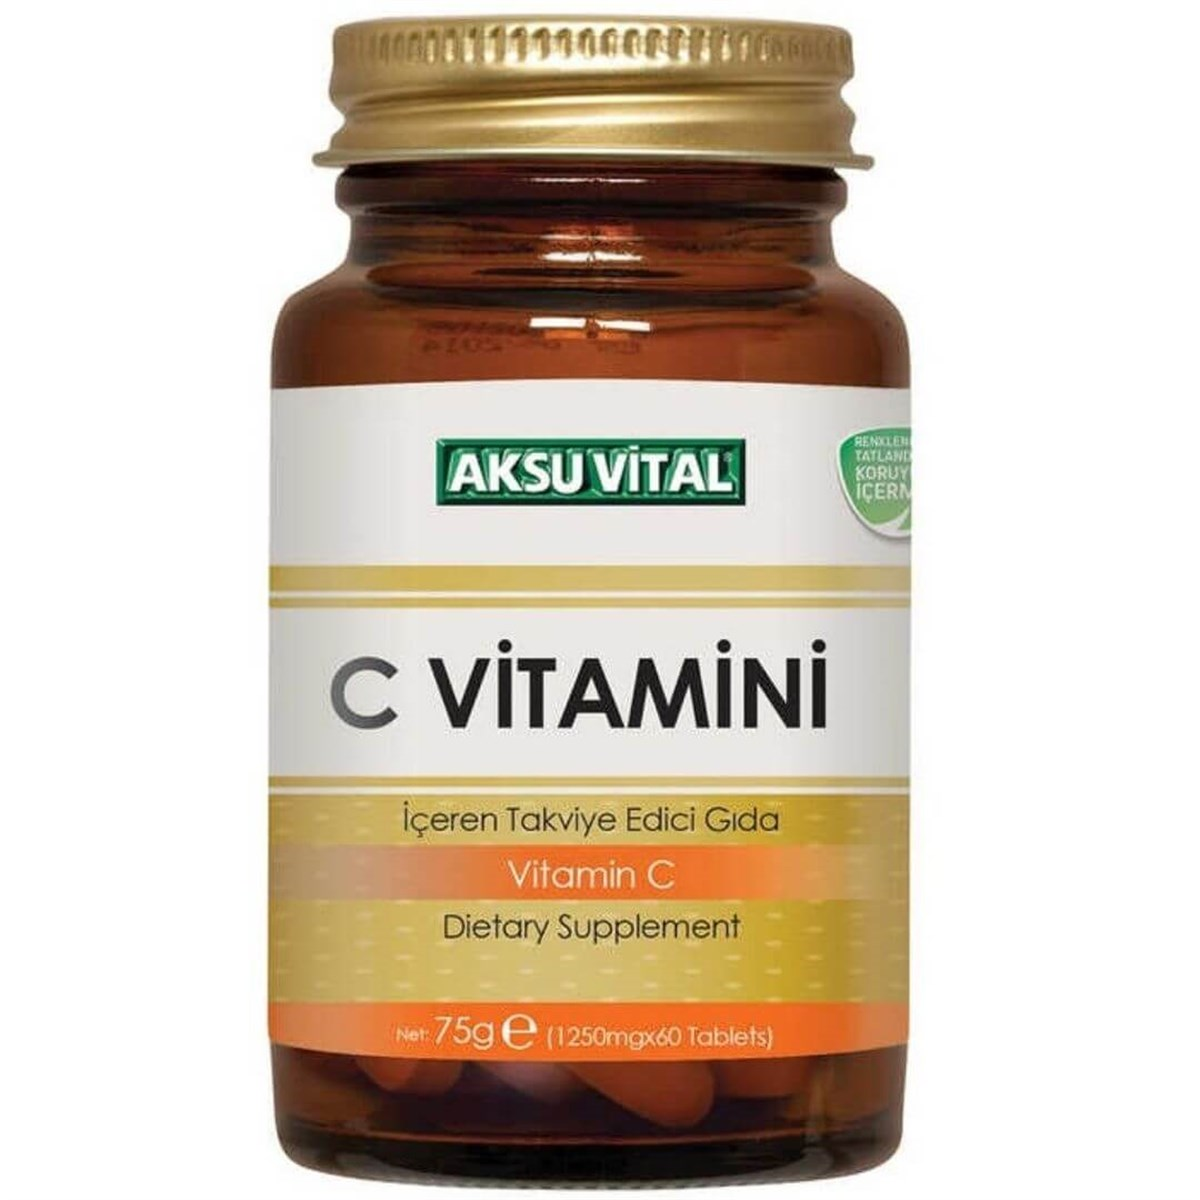 Aksu Vital C Vitamini Tablet 60x1250mg